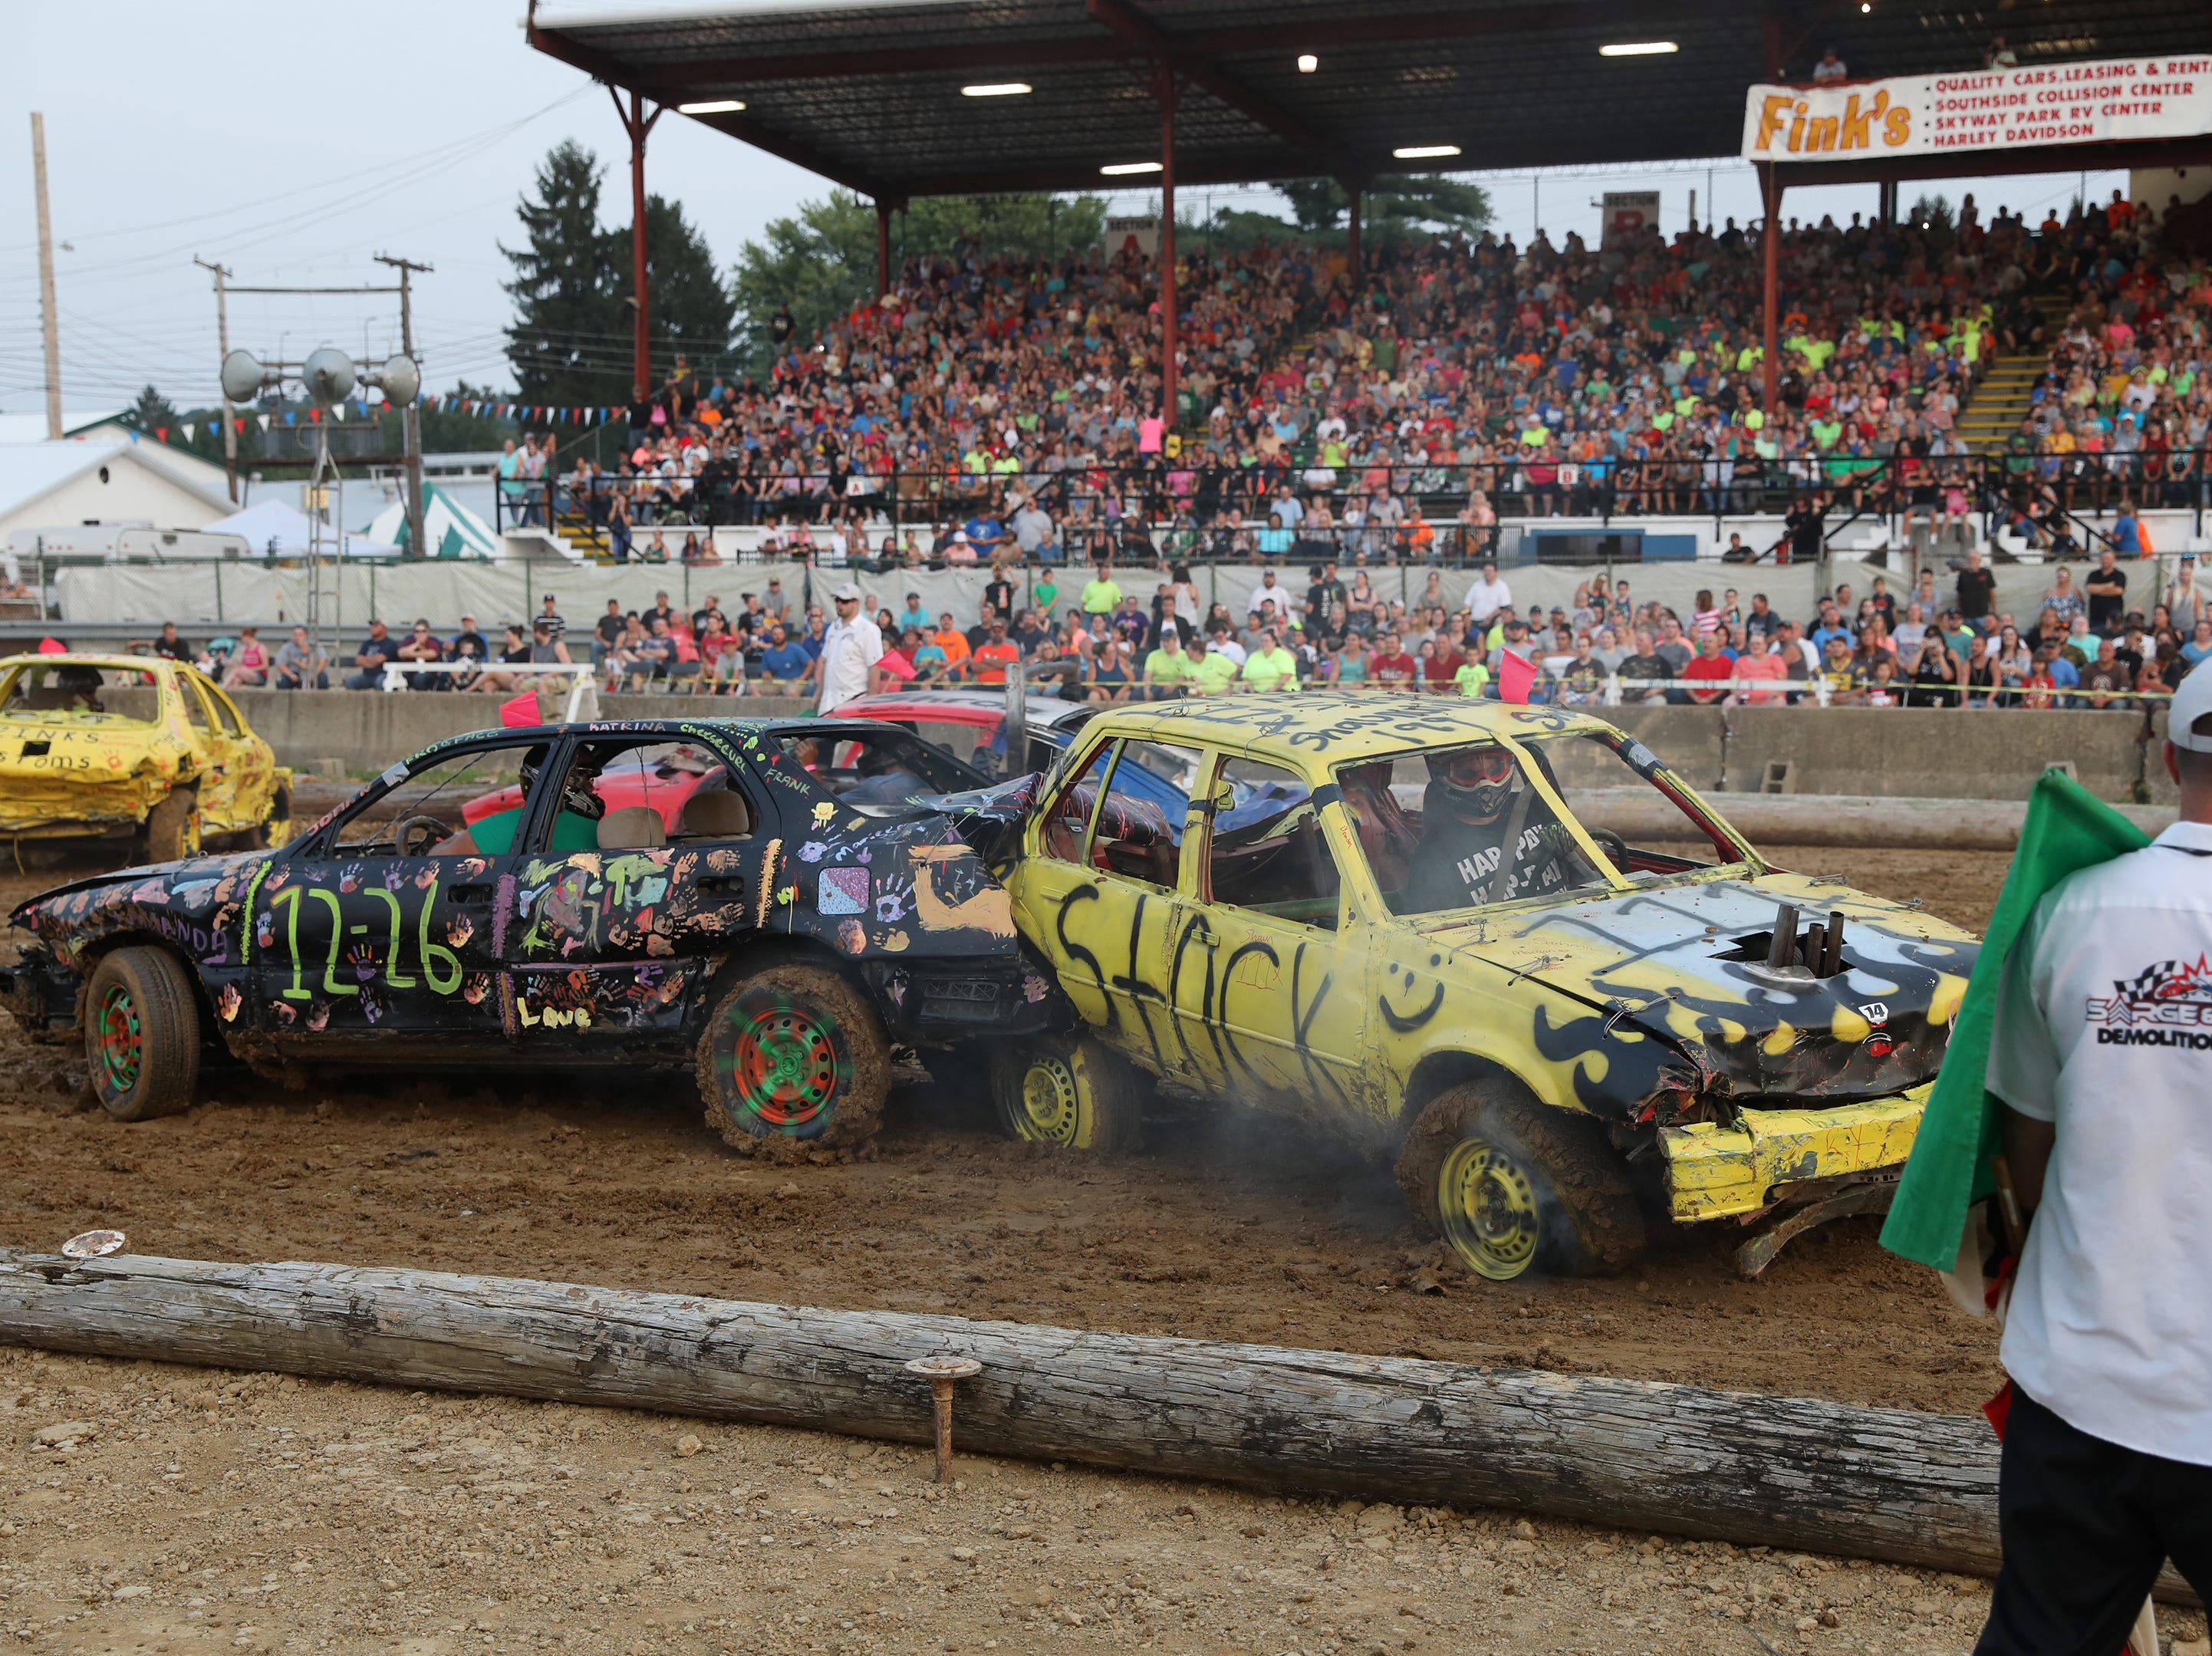 Jimmy Gibson in his 1226 and Shawn Savage in his 111x car tangle during the Sarge and Sons Demolition Derby at the Muskingum County Fair on Tuesday.